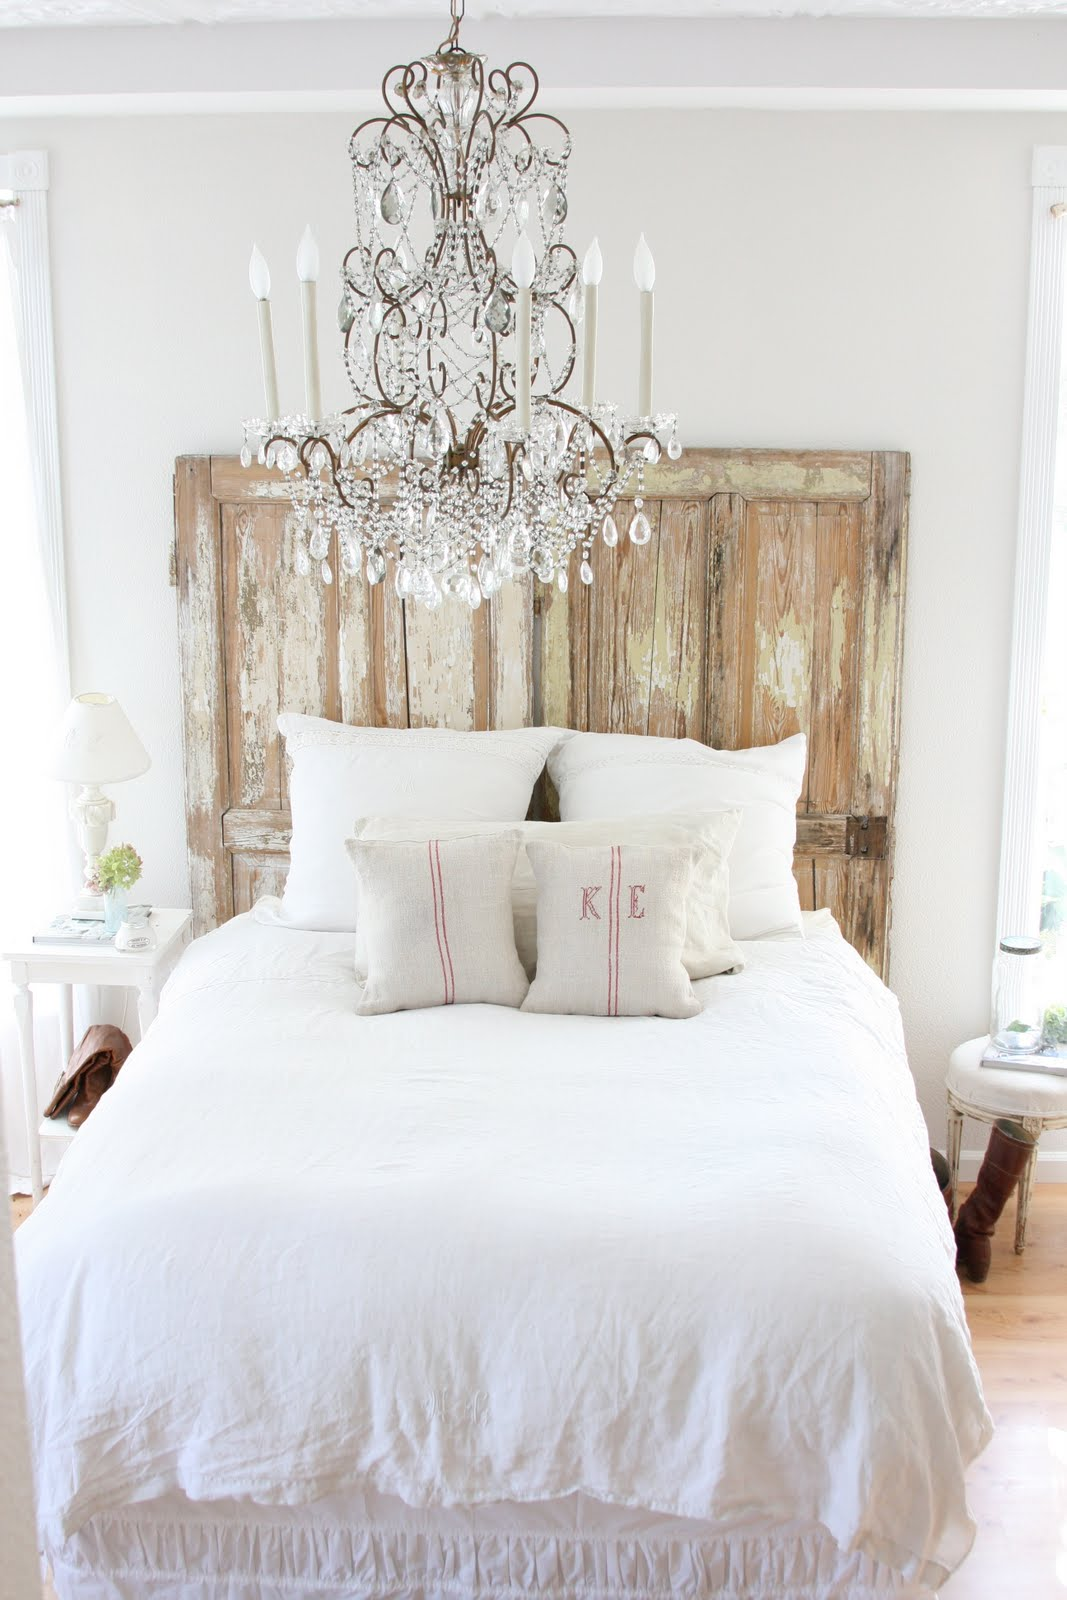 Pretty bedheads pretty spaces for Beautiful rustic bedrooms